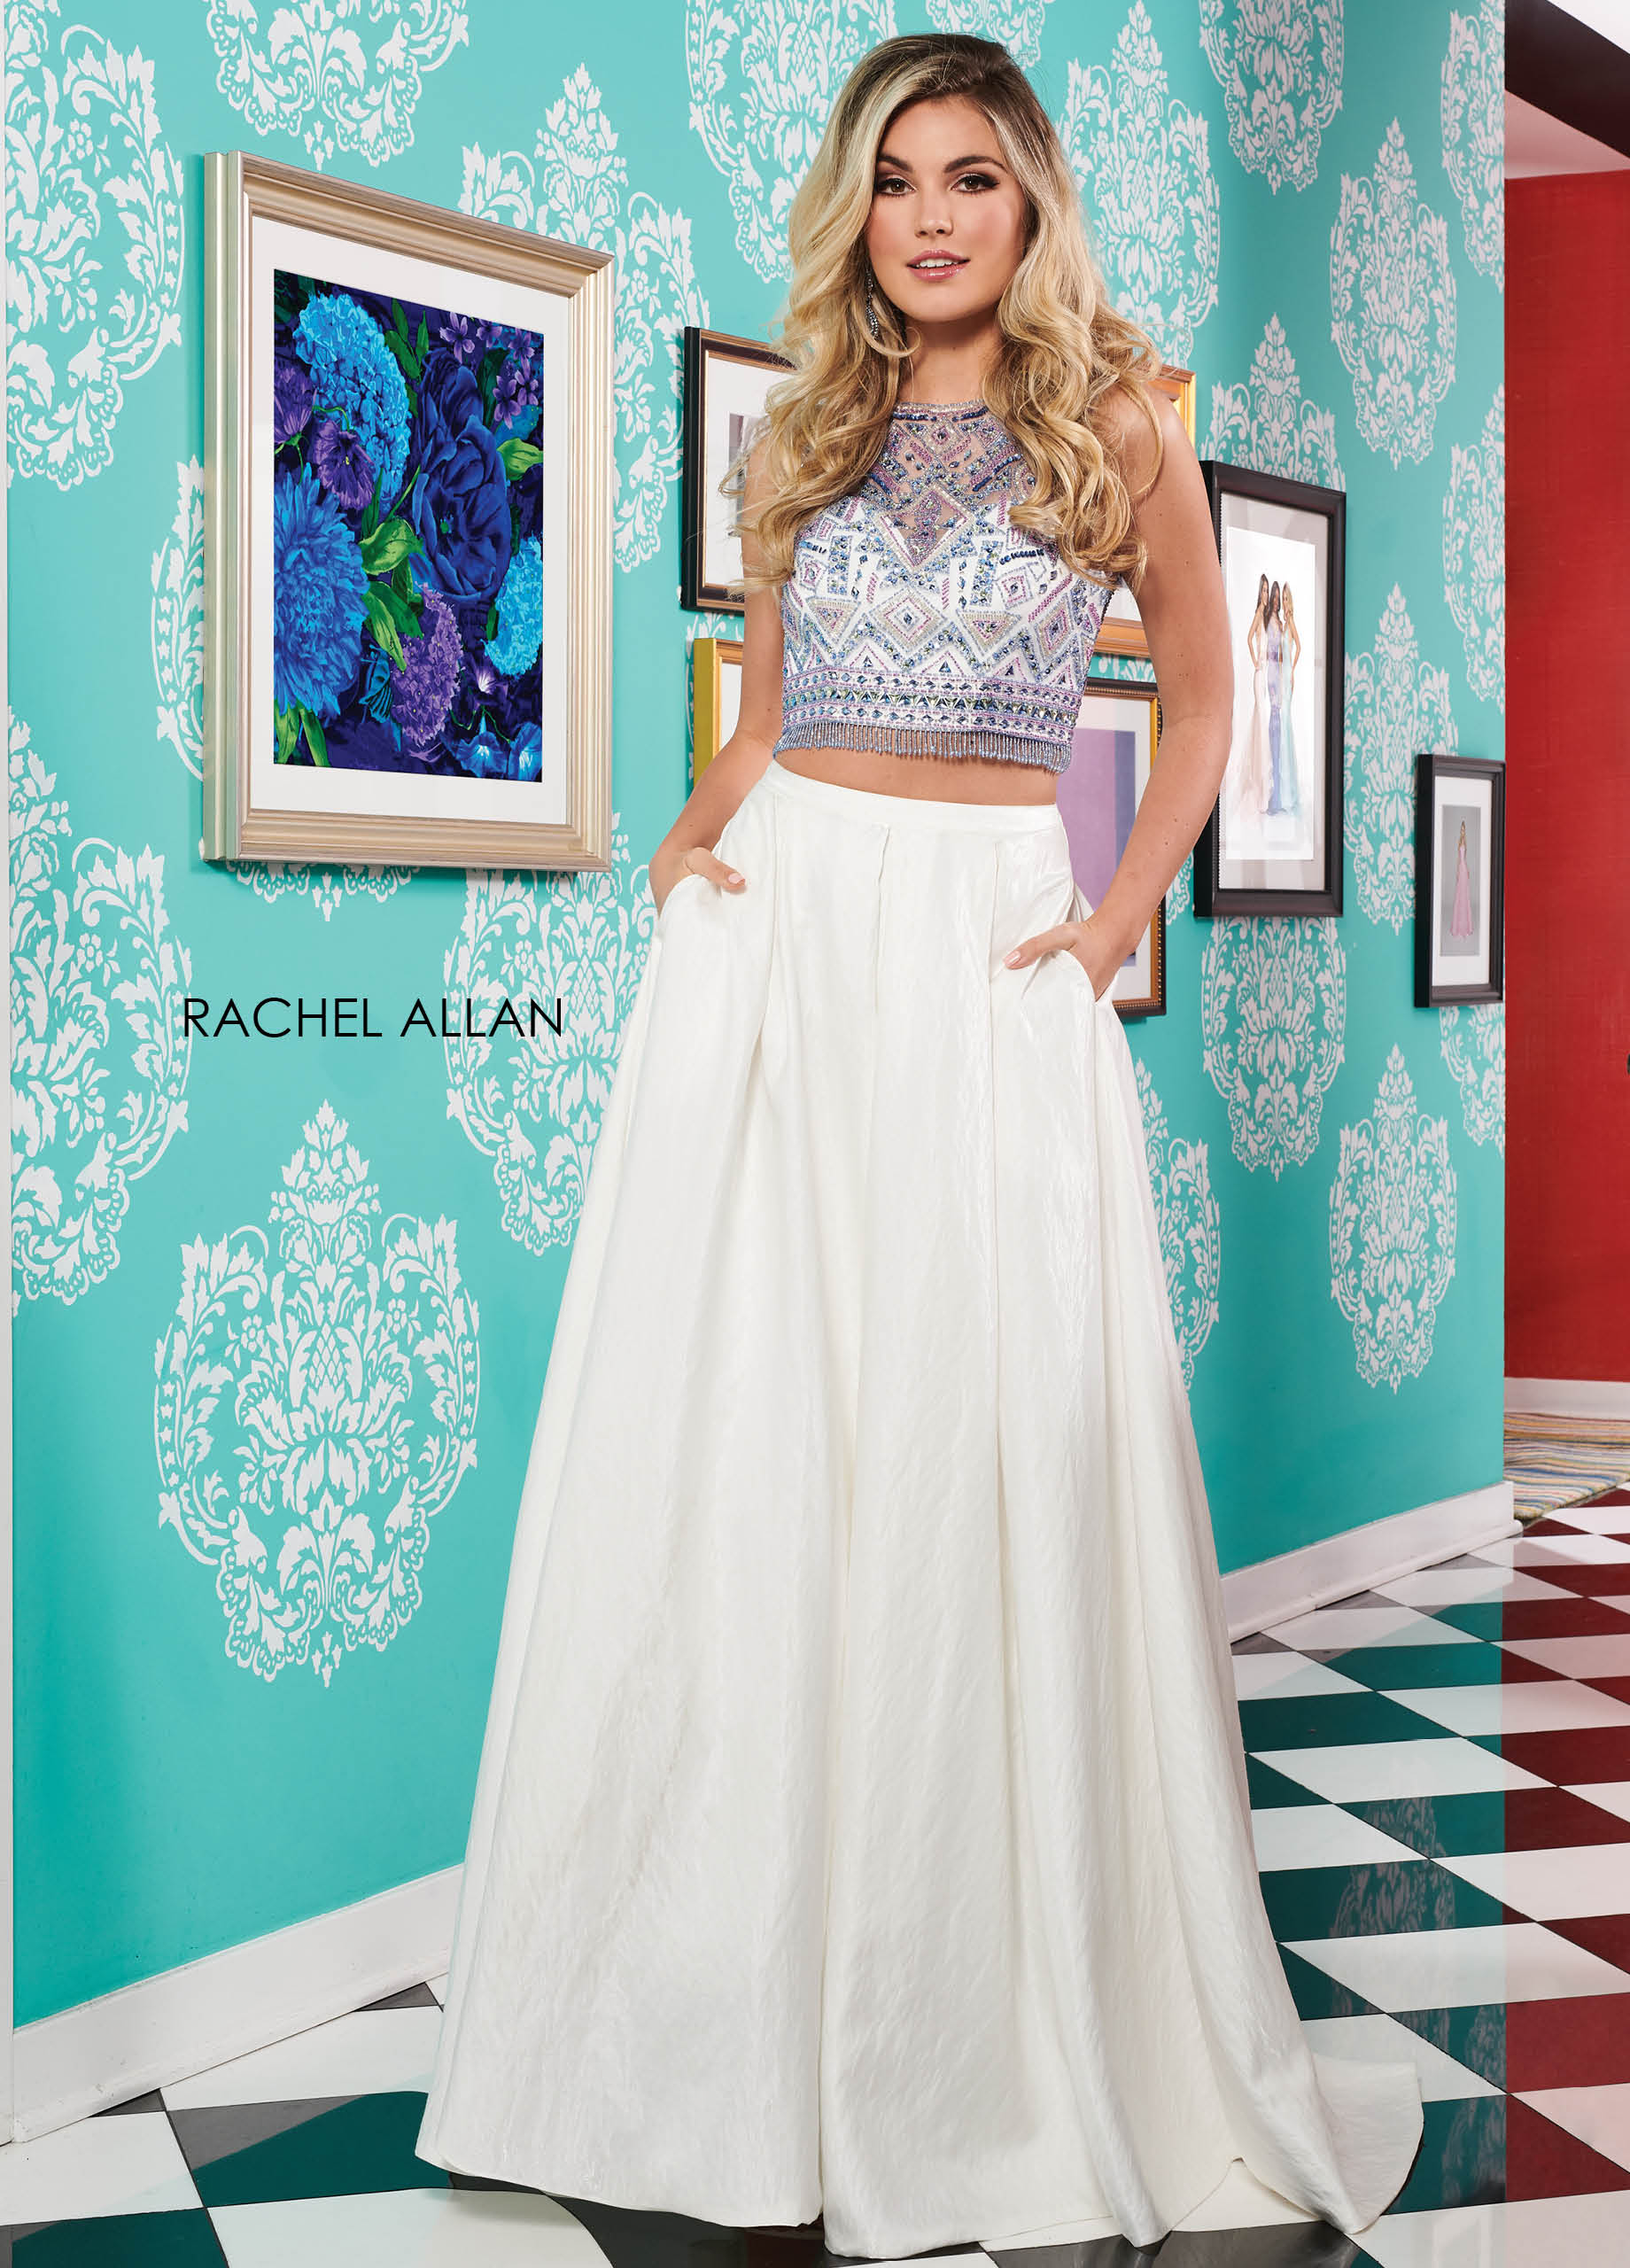 Scoop Neck Two-Piece Prom Dresses in White Color